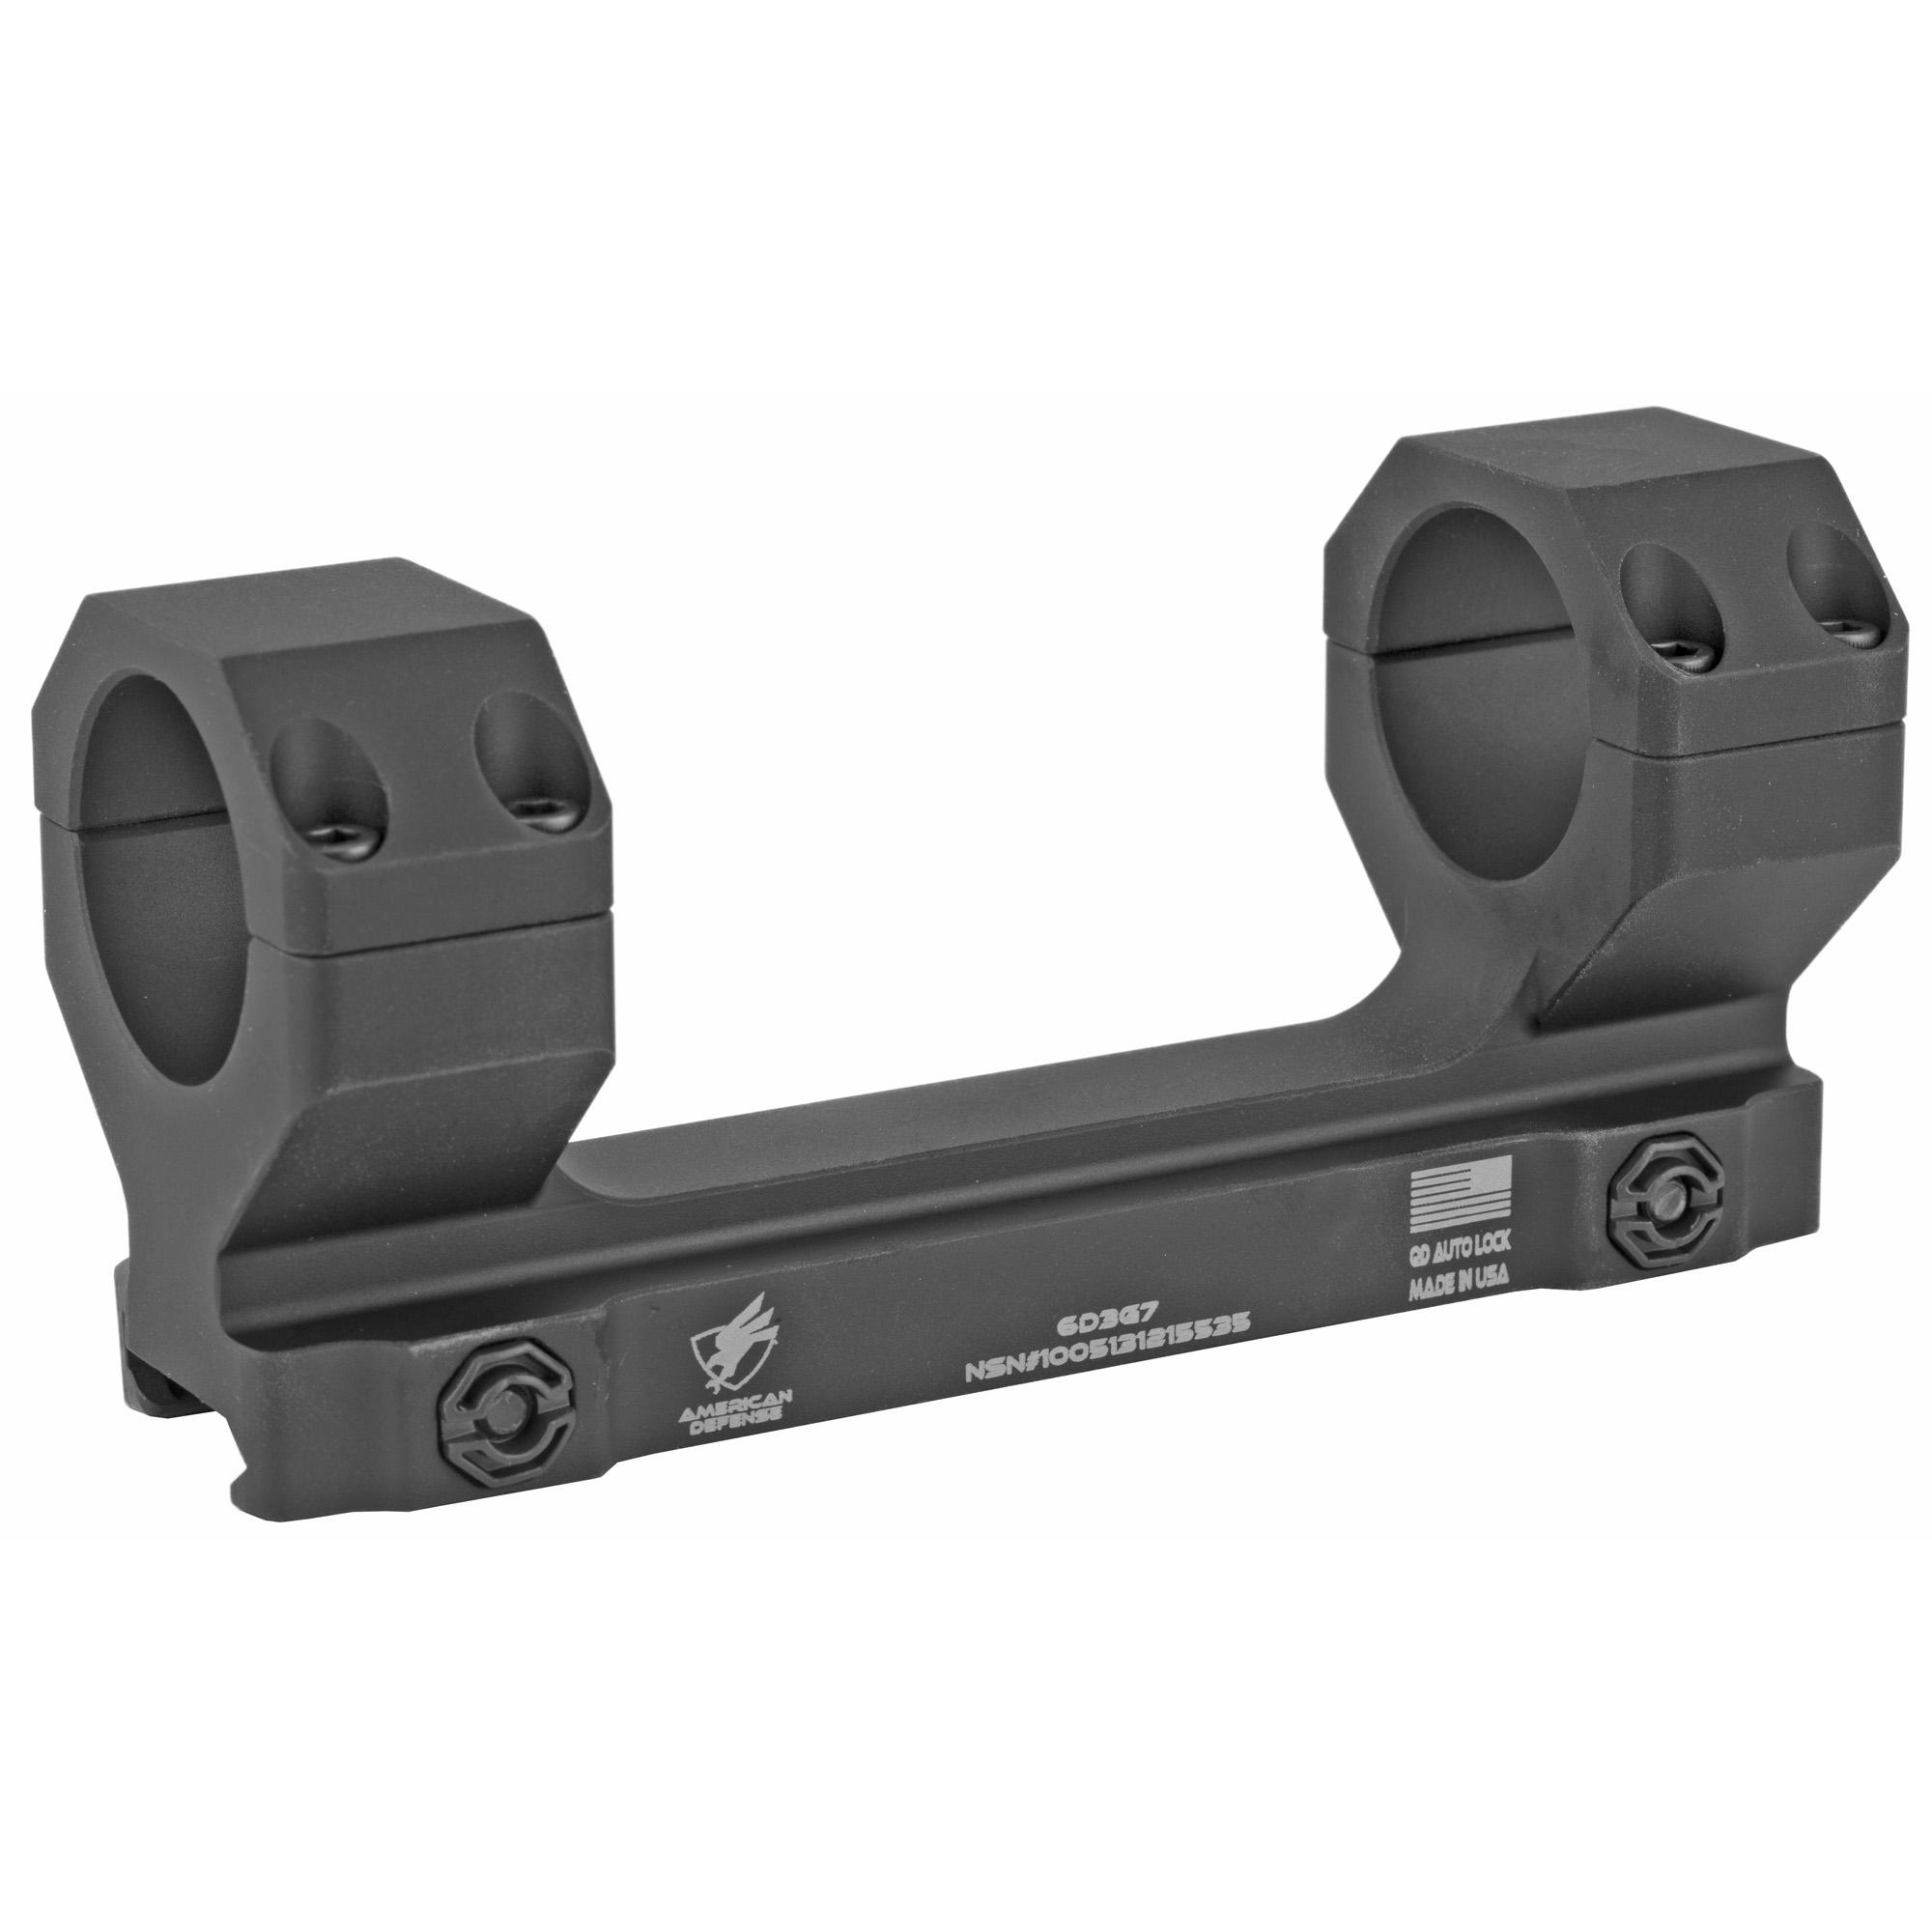 American Defense Mfg. American Defense Mfg. Ad-delta Scp Mount 30mm Black Ti